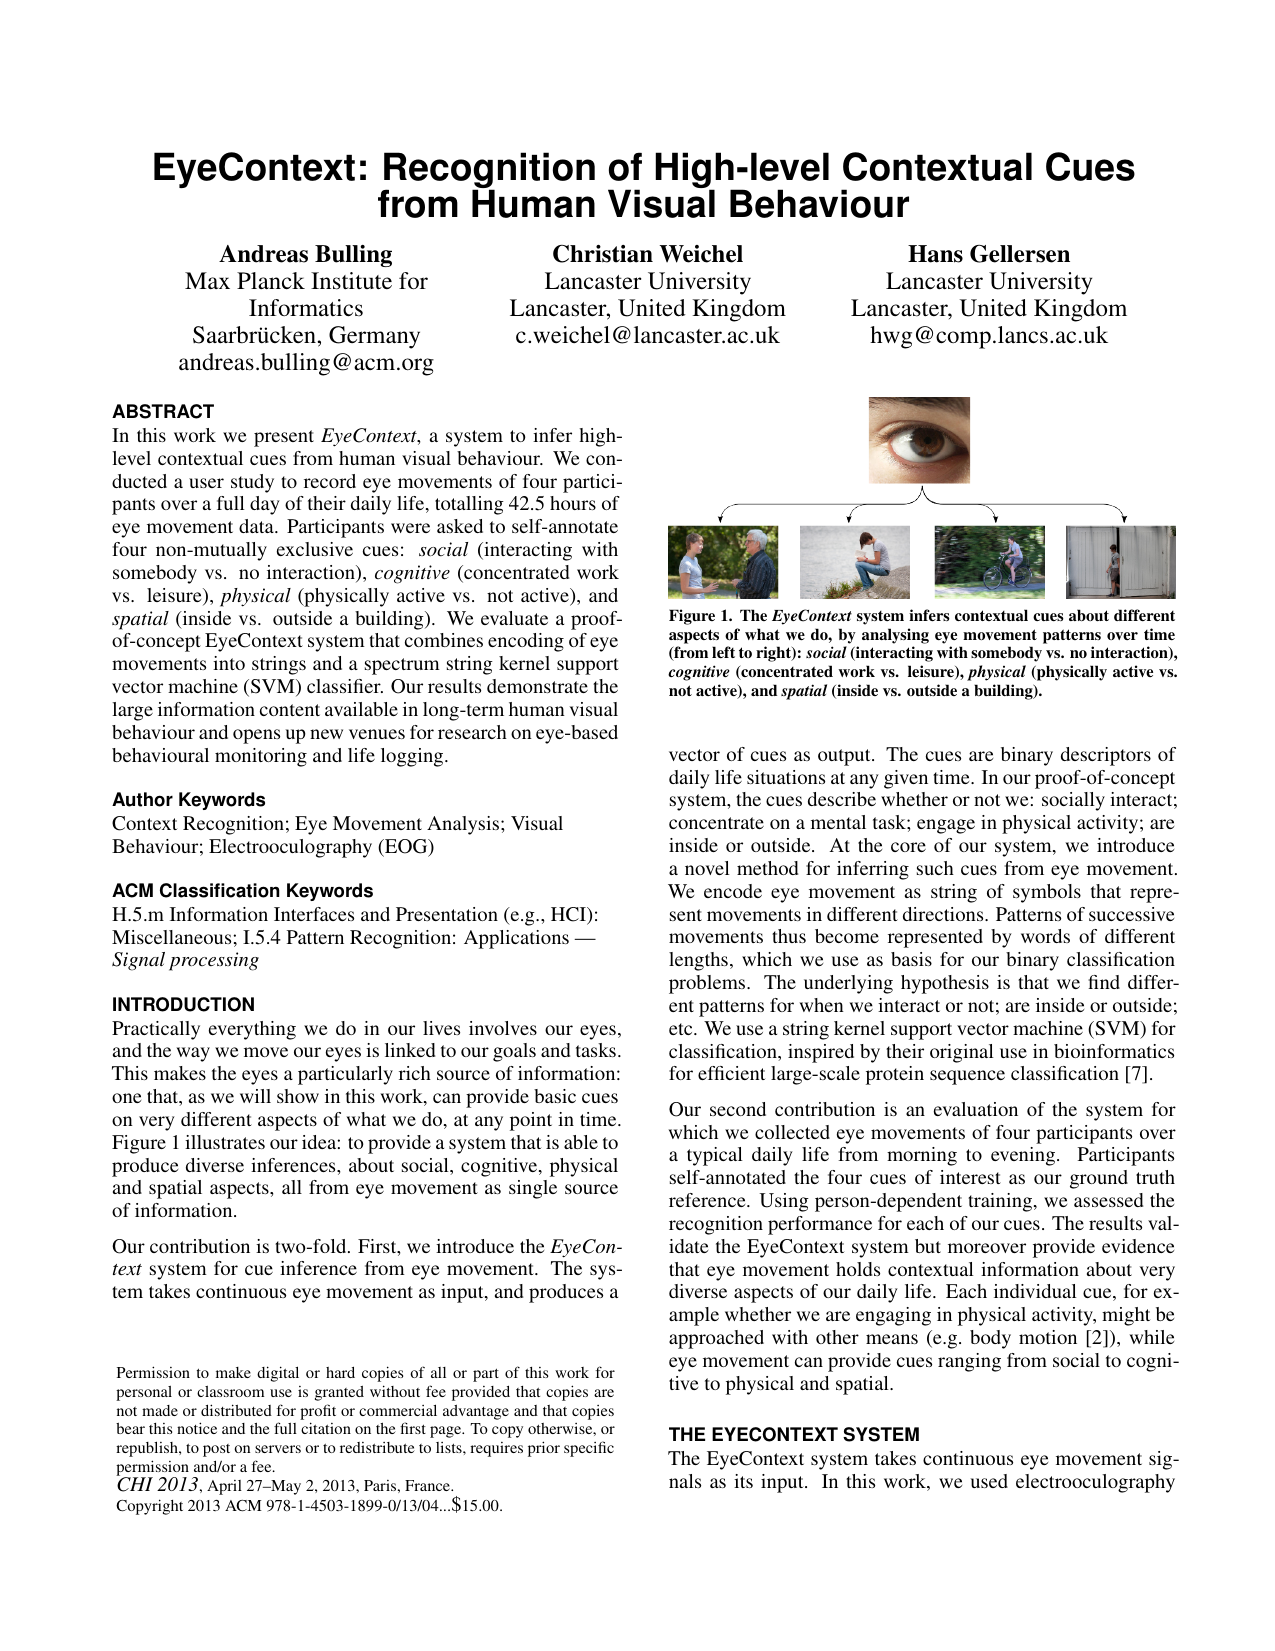 EyeContext: Recognition of High-level Contextual Cues from Human Visual Behaviour